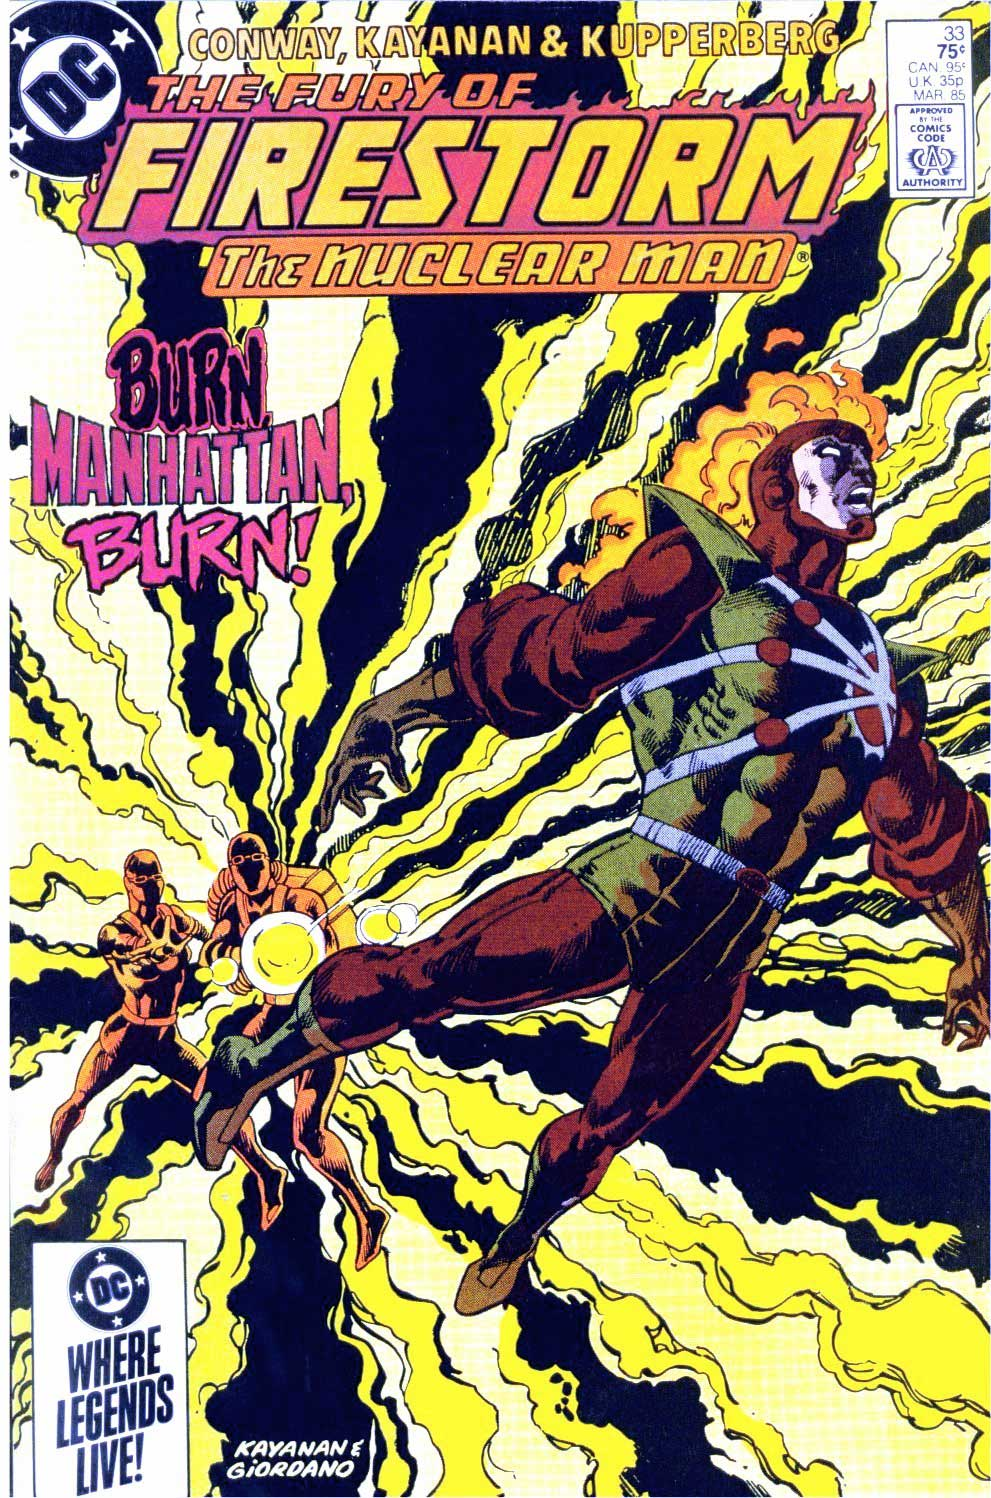 Fury of Firestorm #33 cover by Rafael Kayanan and Dick Giordano!